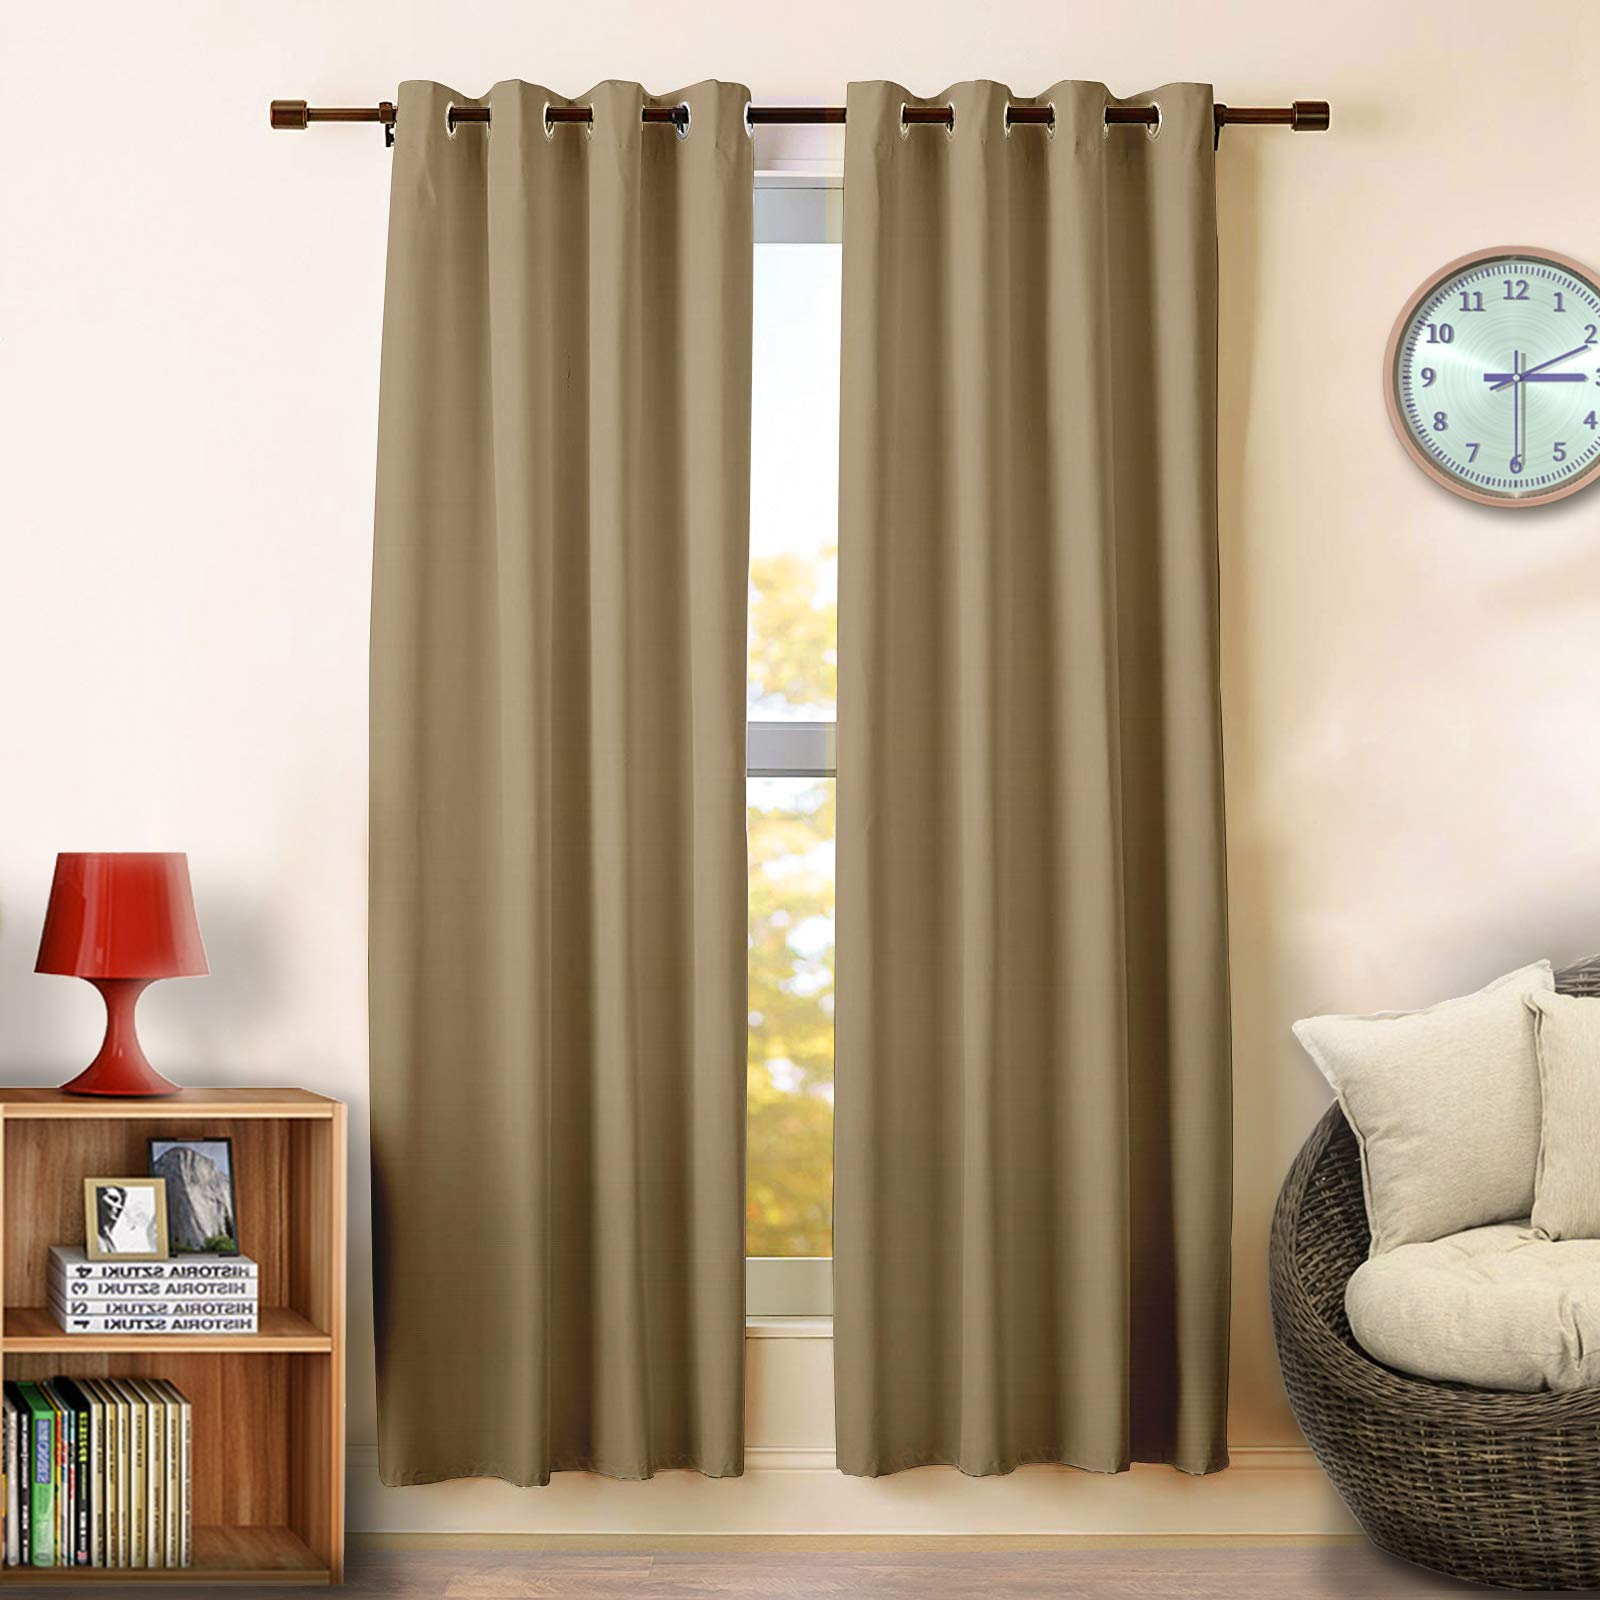 heavy weight Blackout curtains